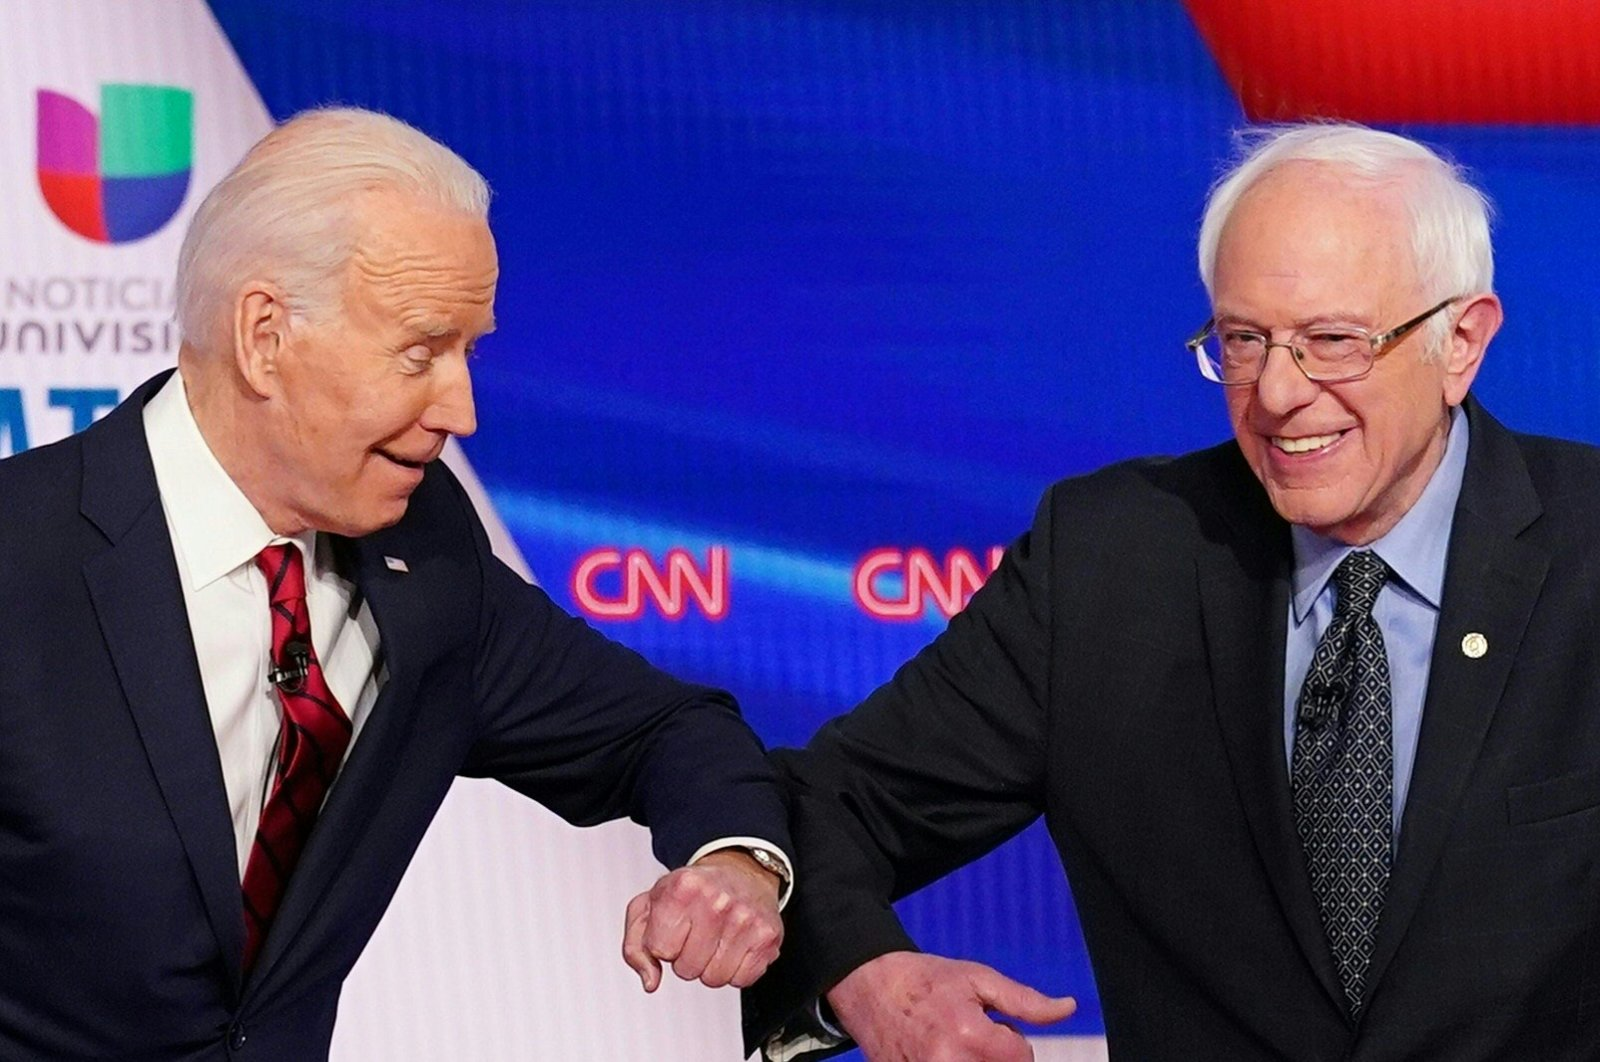 Joe Biden (L) and Senator Bernie Sanders greet each other with a safe elbow bump before the start of the 11th Democratic Party 2020 presidential debate in a CNN Washington Bureau studio in Washington, March 15, 2020. (AFP Photo)